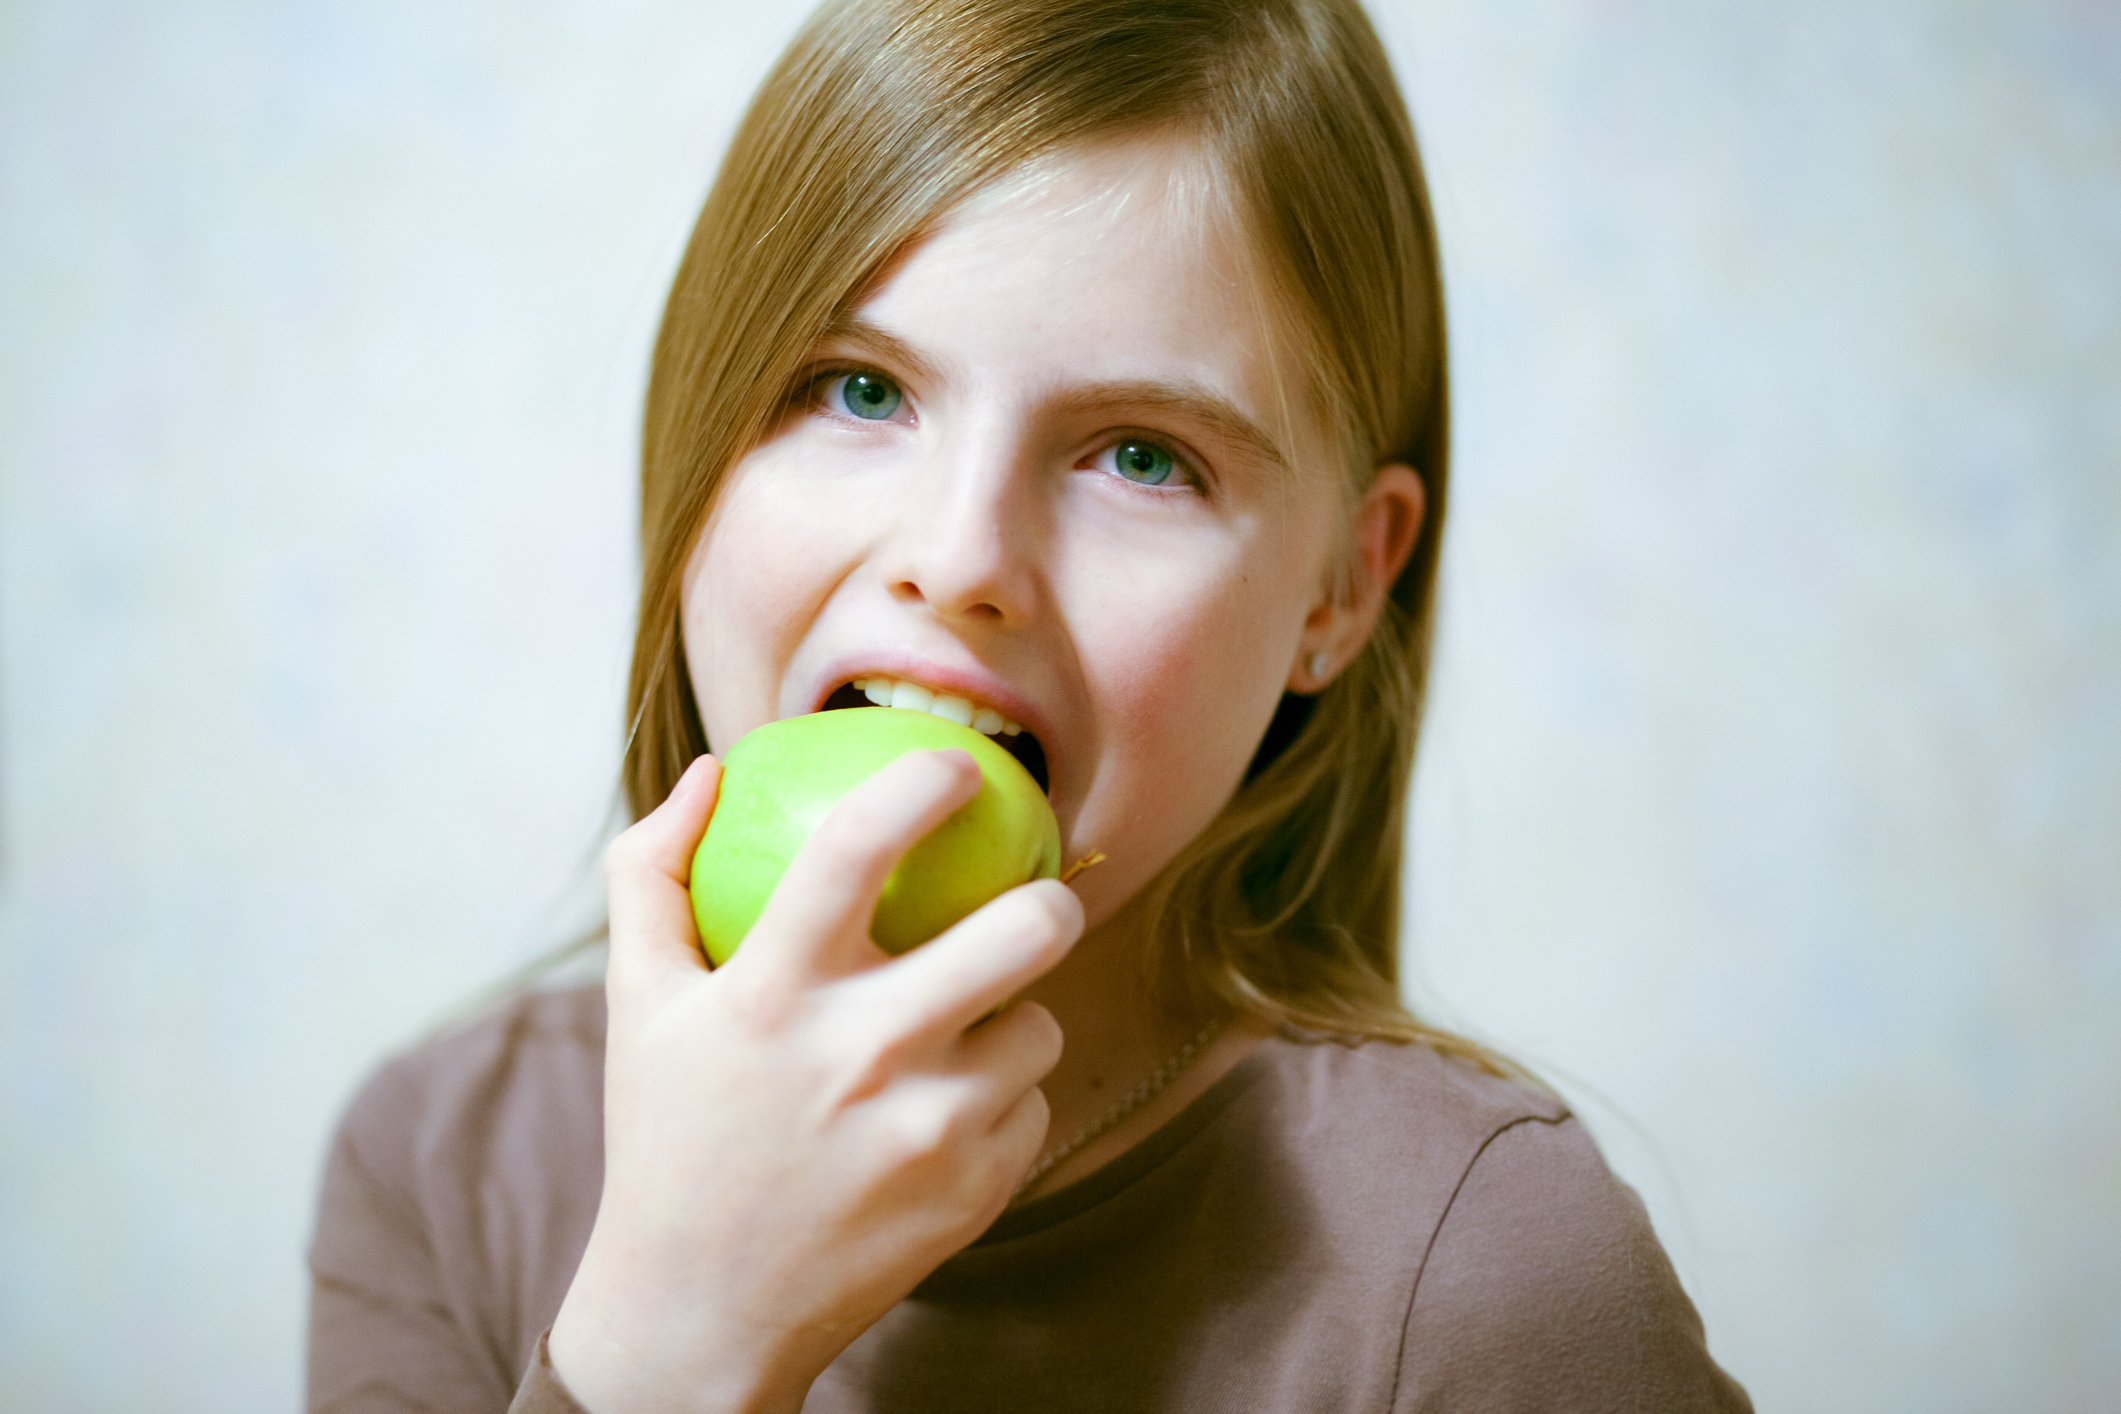 Young girl eating a green apple (Thinkstock/PA)